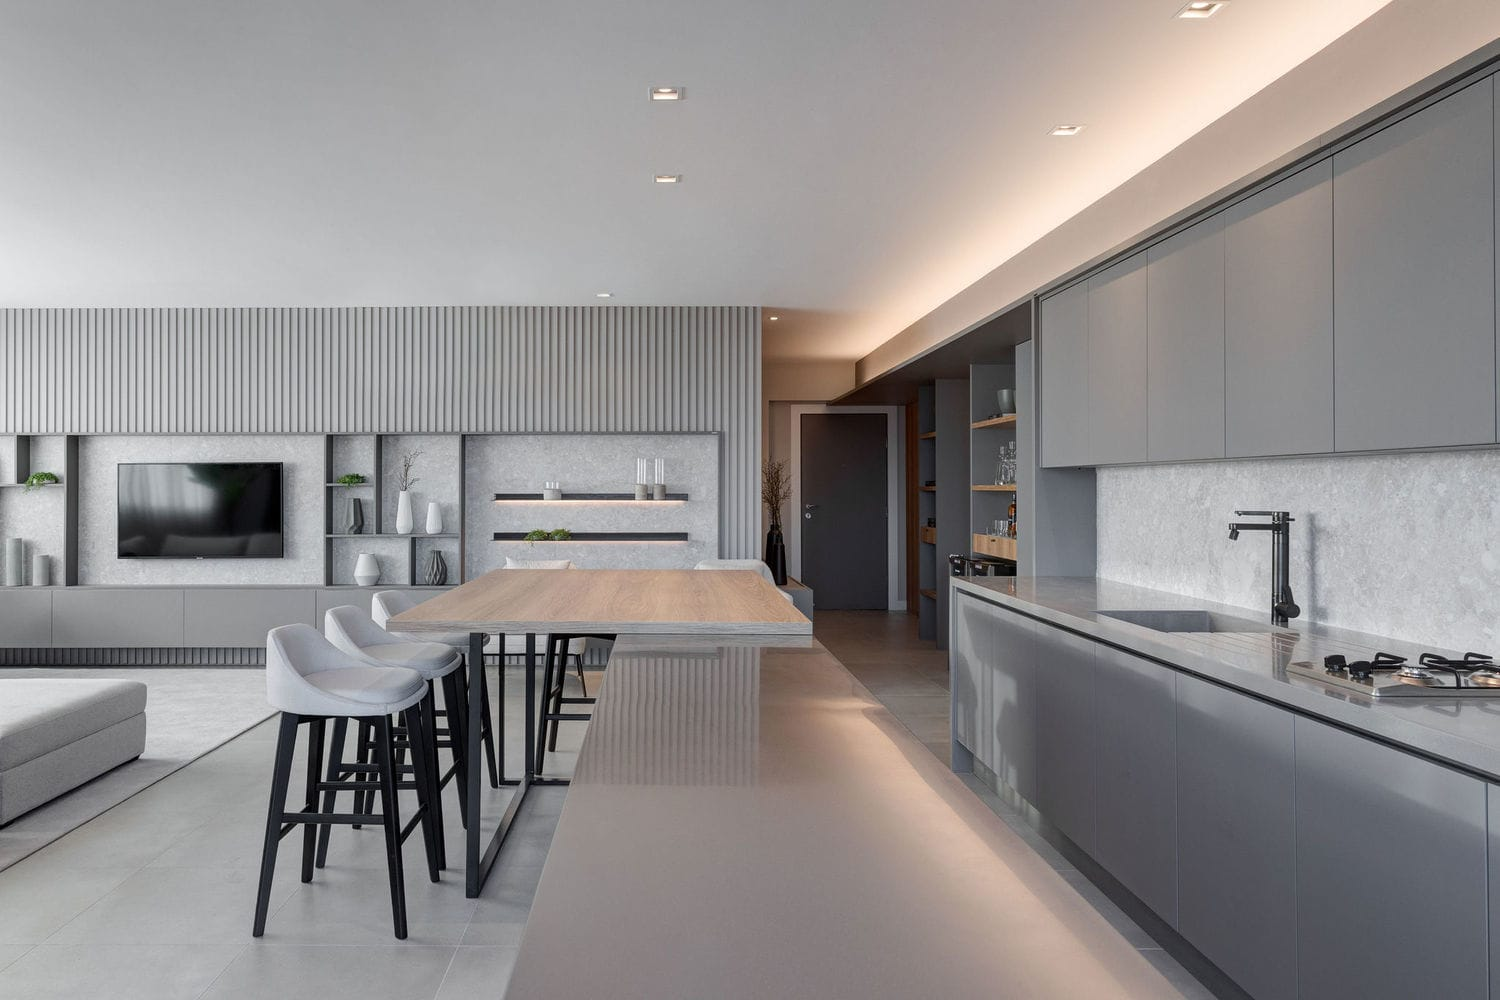 Create Kitchen Design And Renderings In 1 Day By Frenzyarchitect